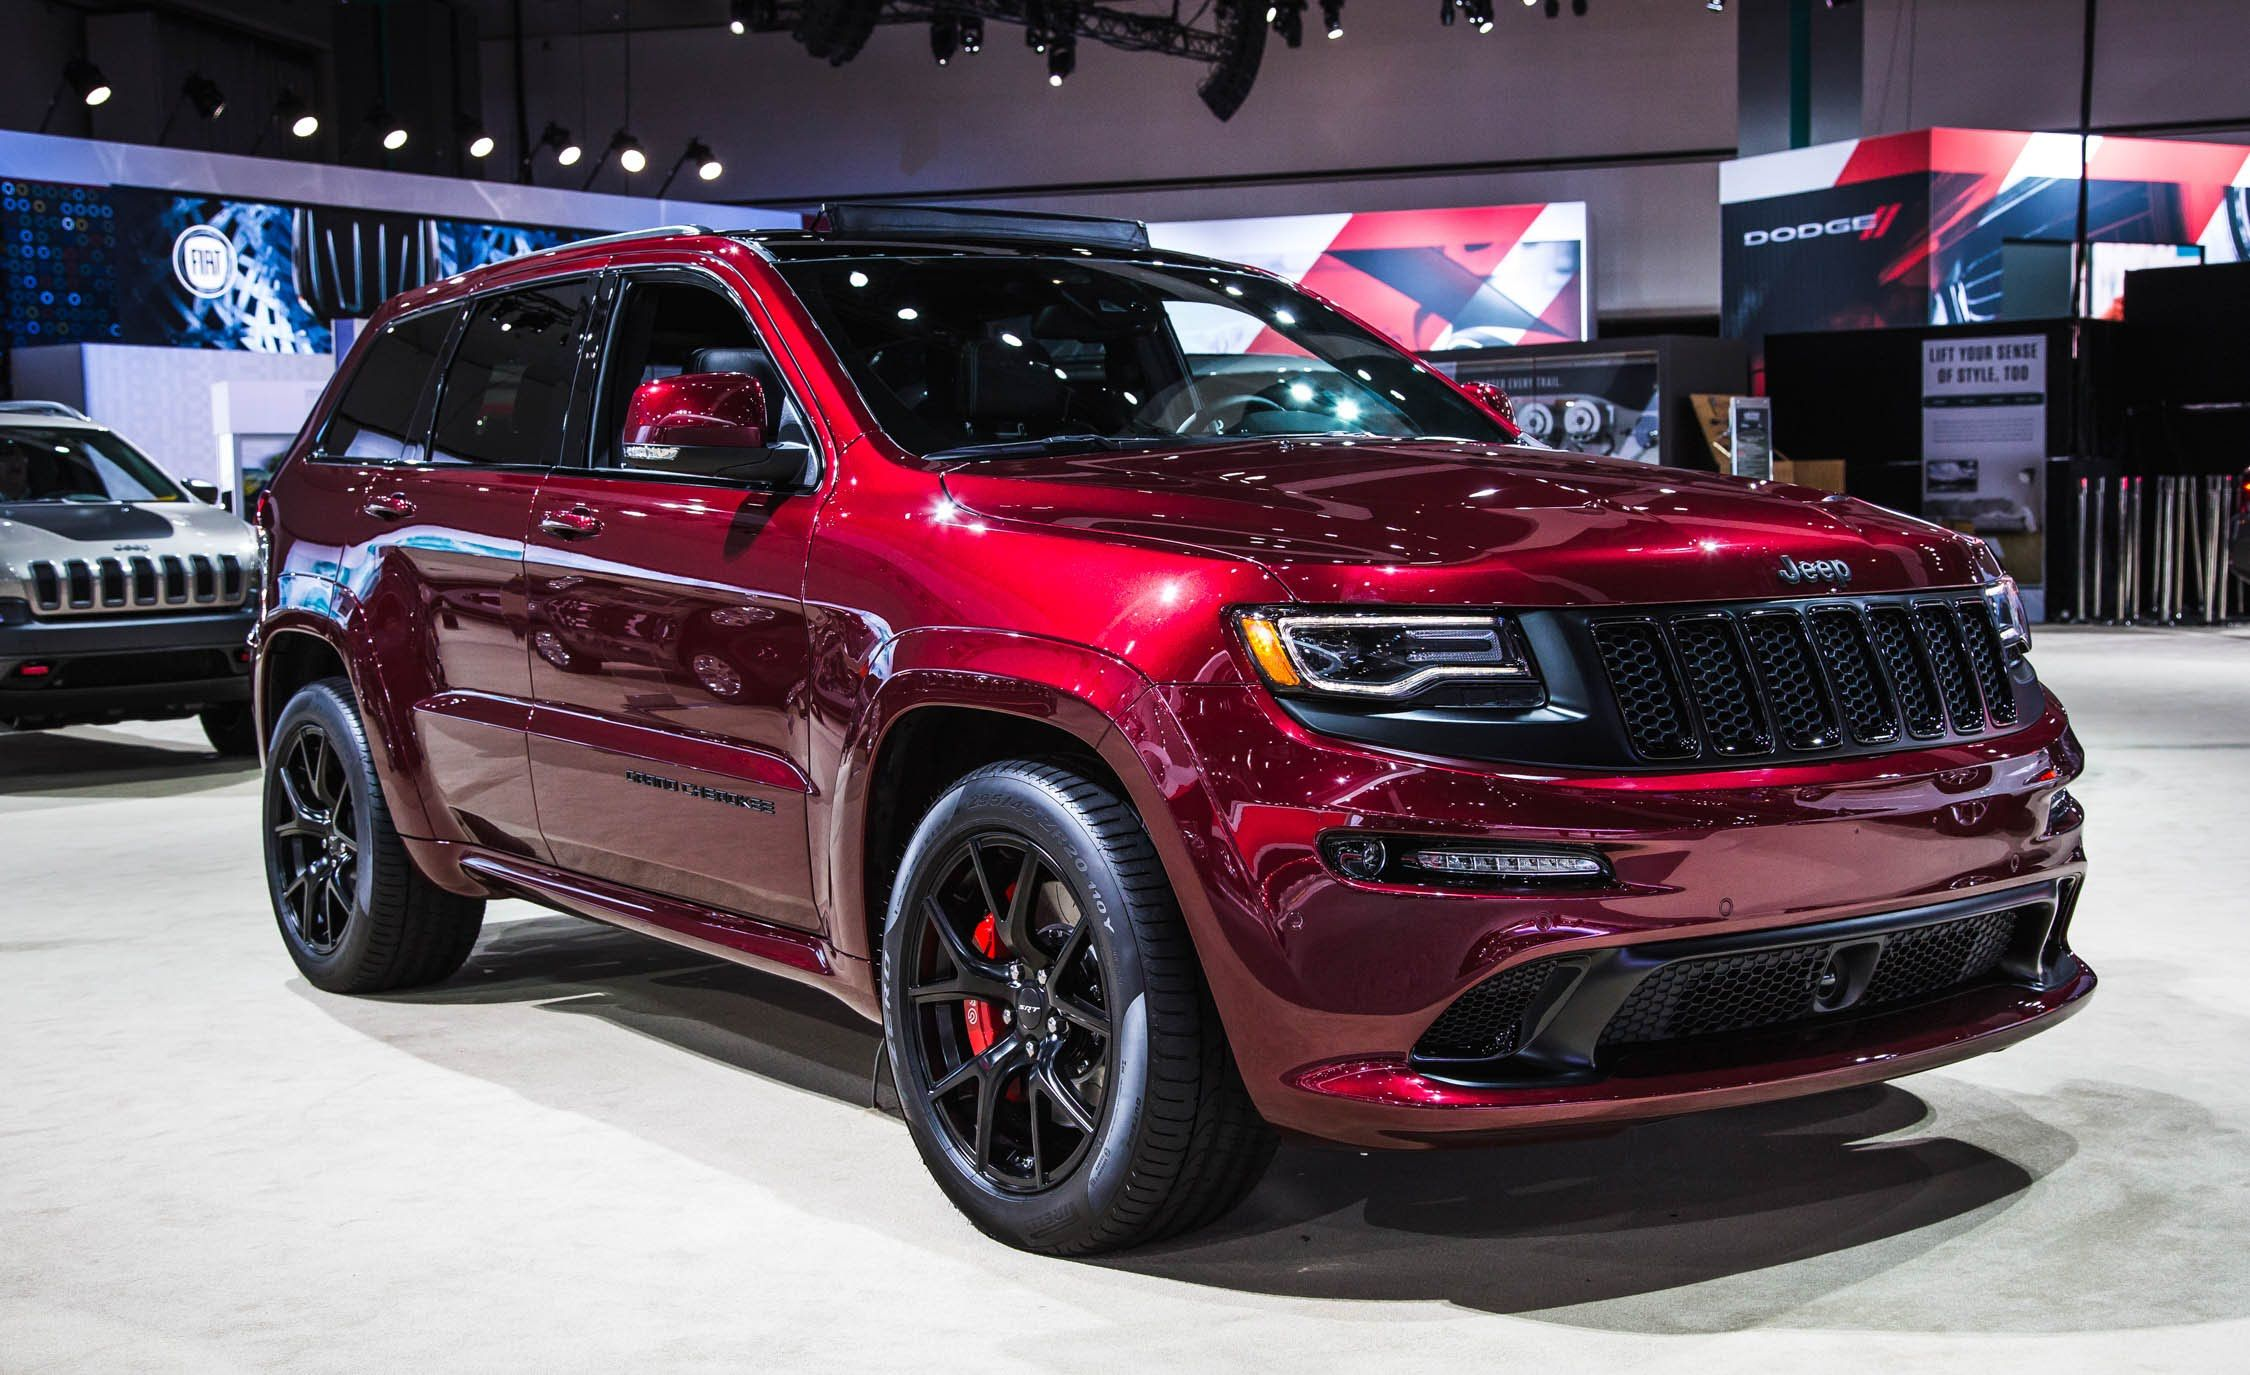 2016 Jeep Grand Cherokee Srt Night Edition La Auto Show 2015 Grand Cherokee Srt8 Jeep Grand Cherokee Limited Jeep Srt8